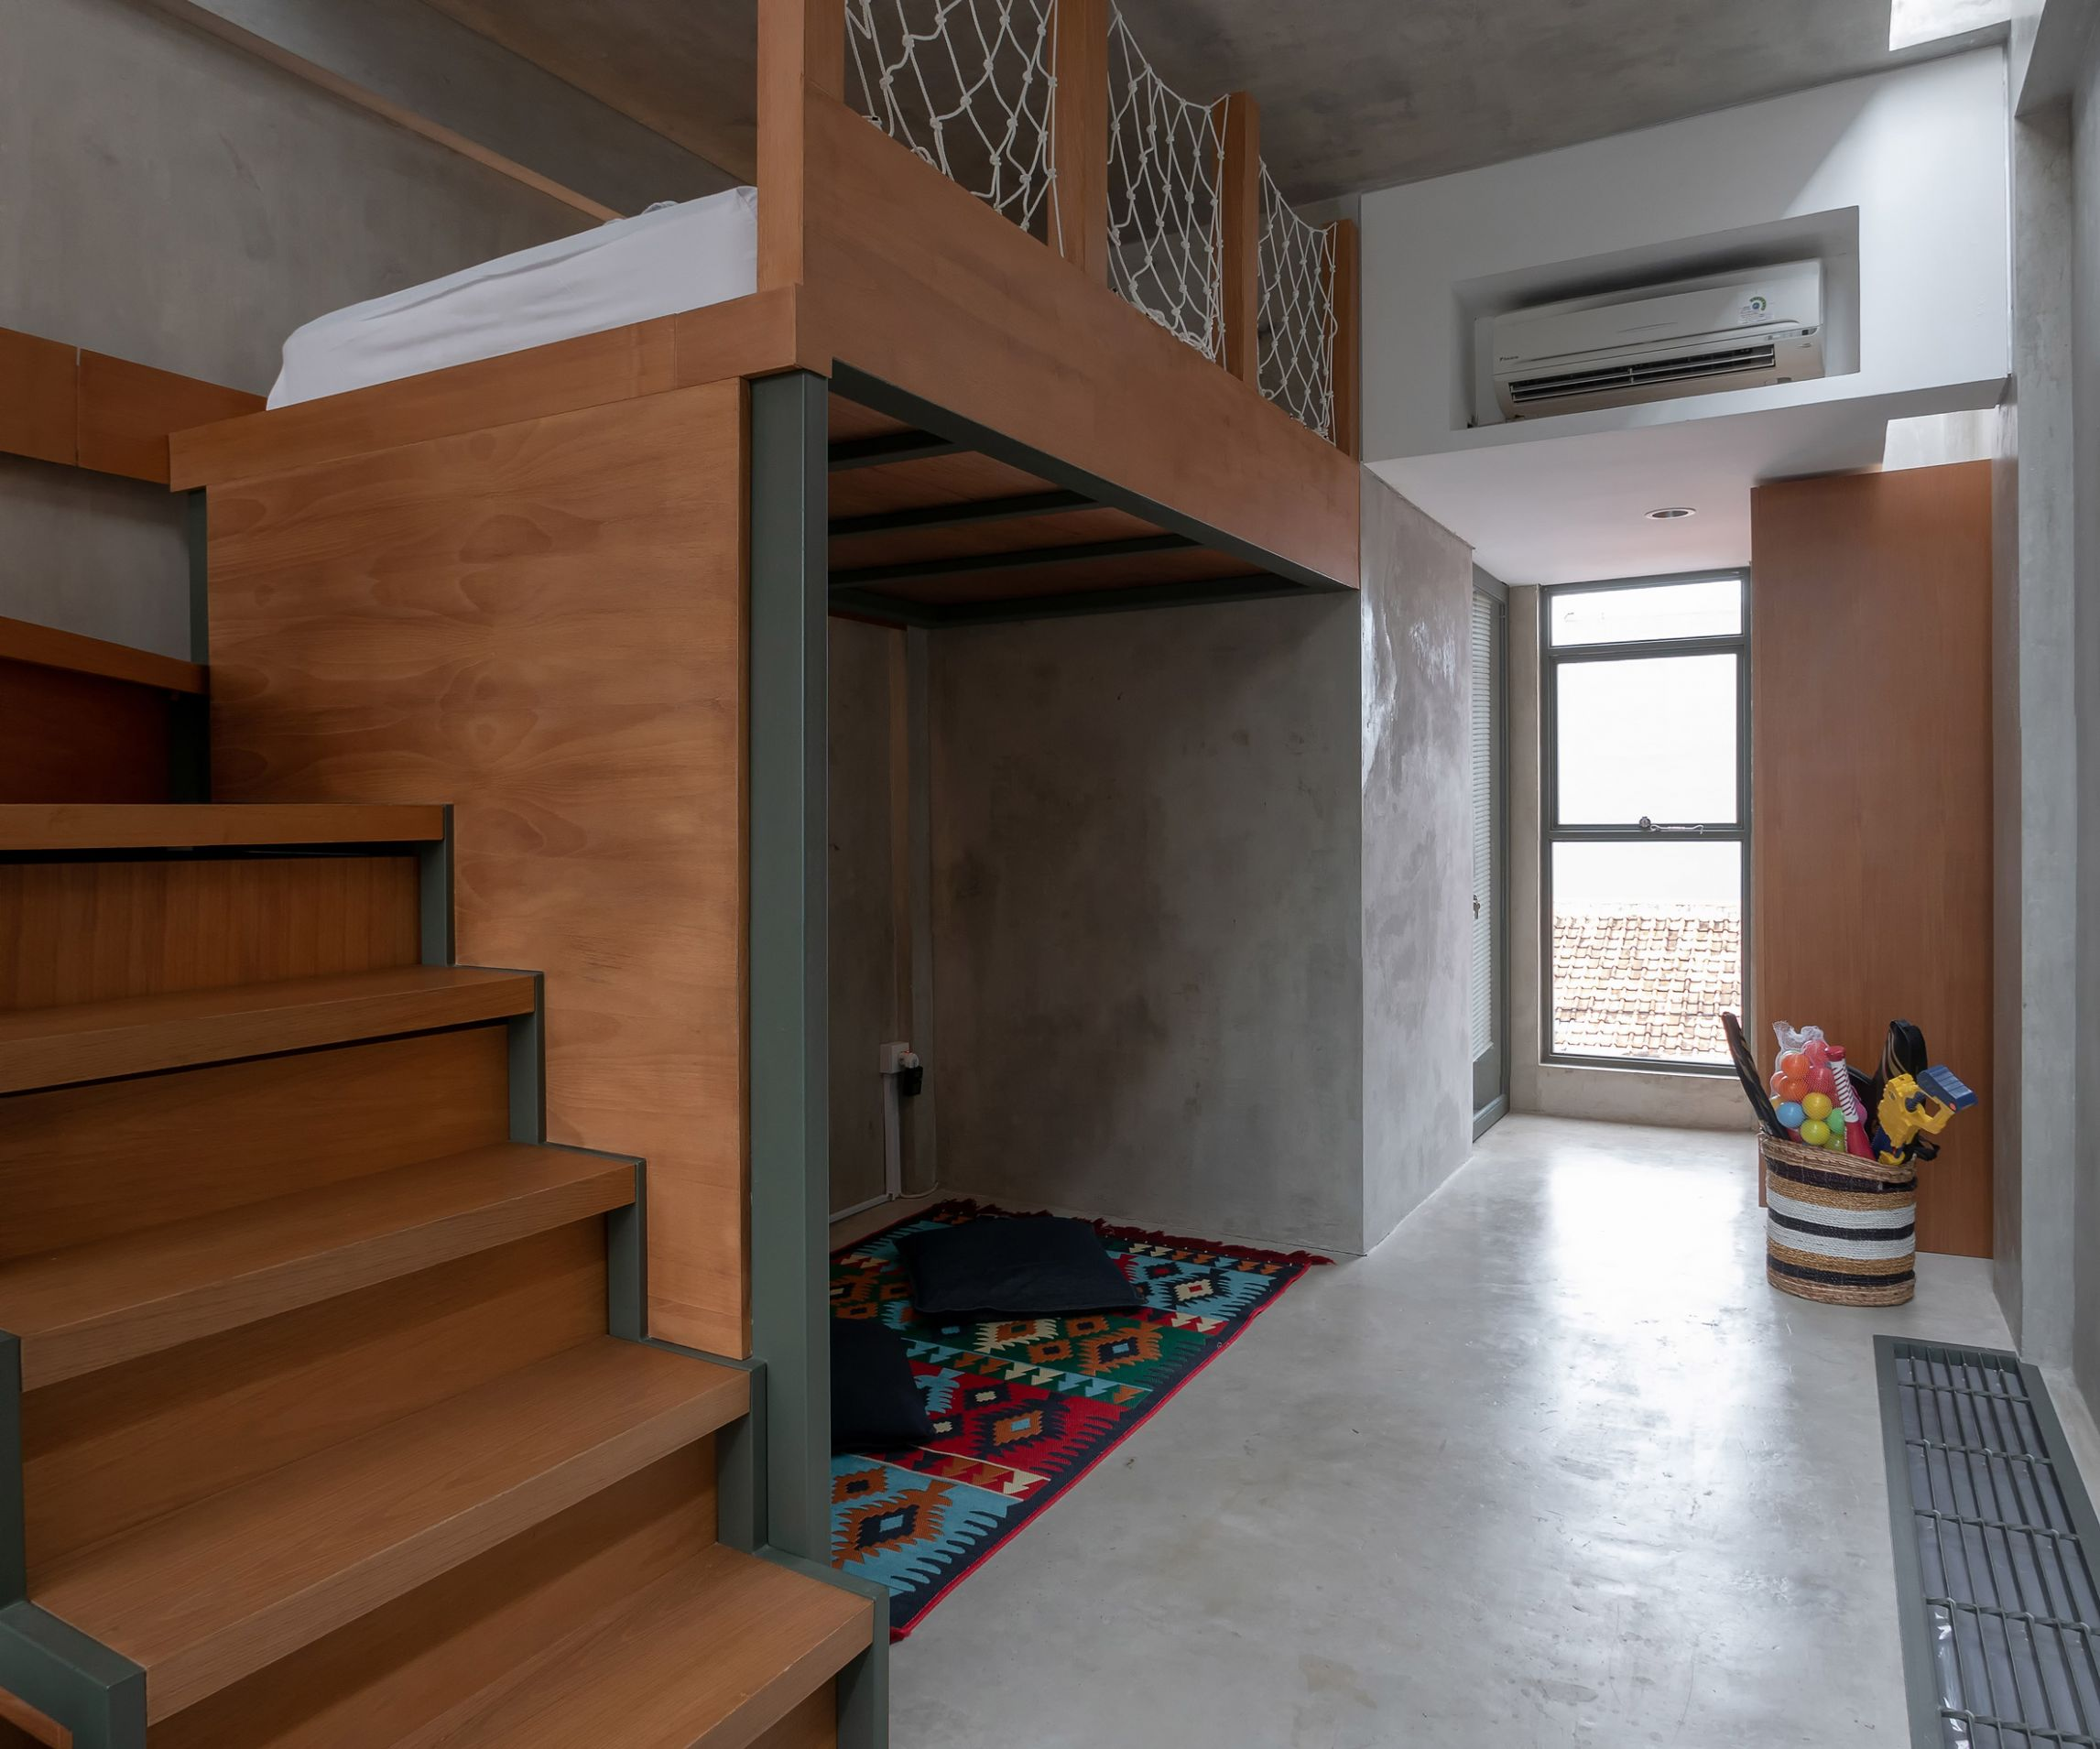 8,8 Millimetre House is a skinny house in Indonesia on a 8.8 ..